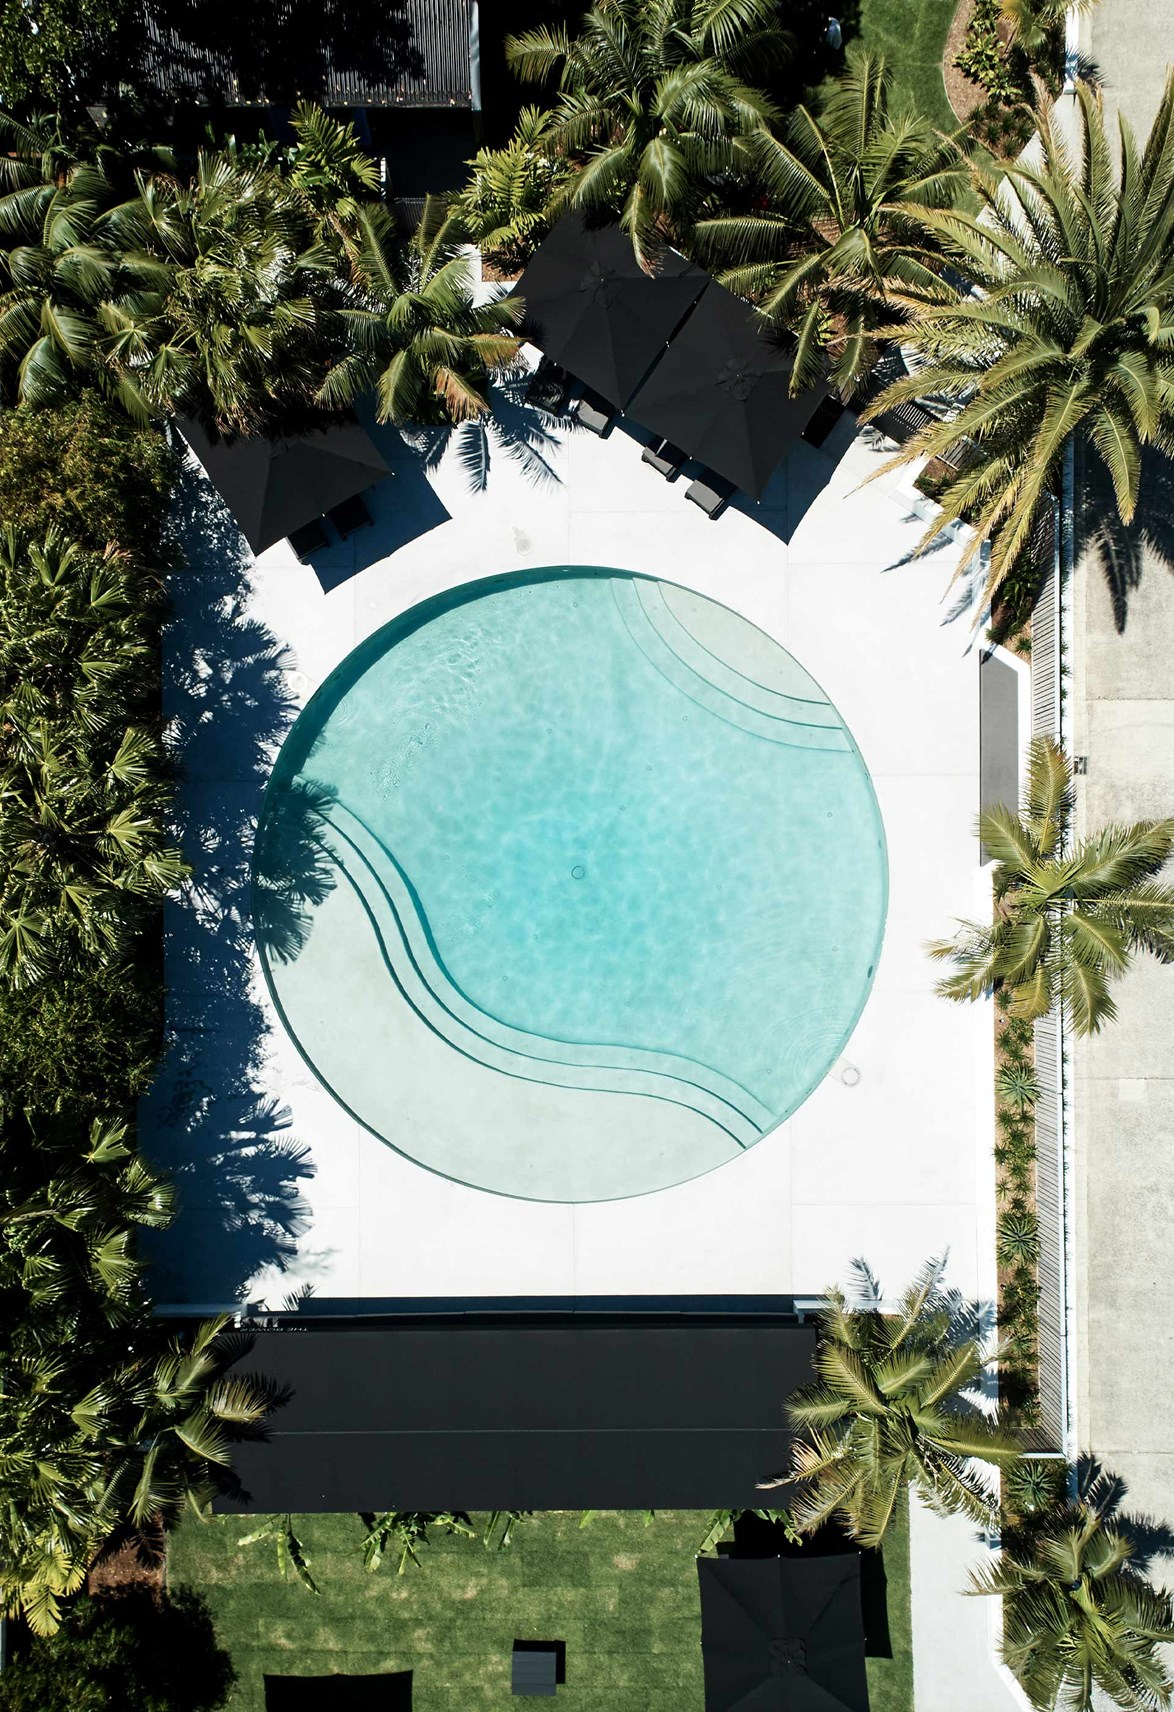 """***THE BOWER*** <p> <p>Established in mid-2017, [The Bower](https://www.homestolove.com.au/inside-byron-bays-stunning-boutique-hotel-the-bower-17558